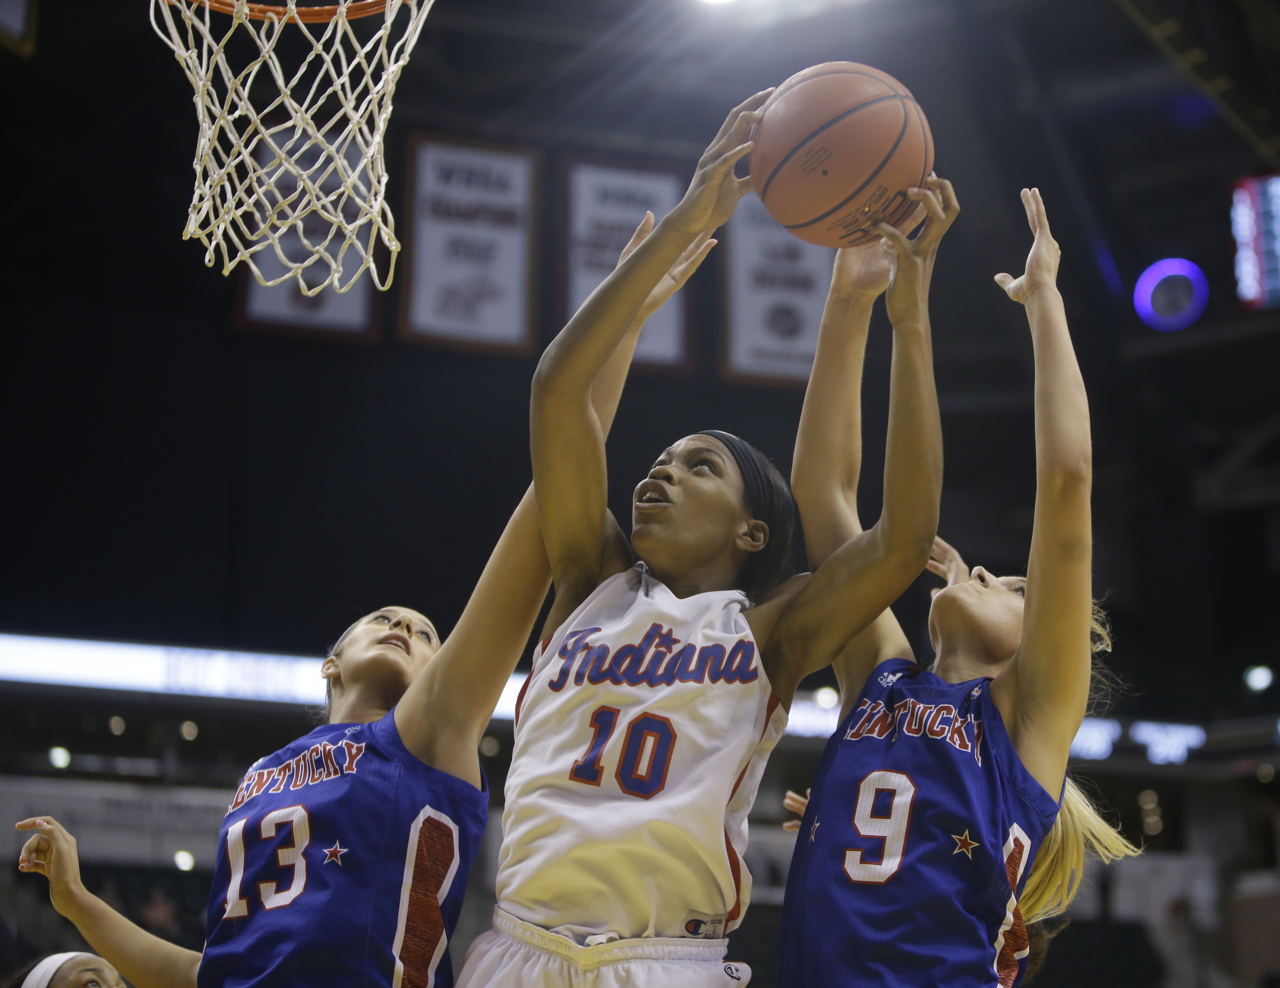 New Albany's Chyna Anthony (10), Metcalfe County's Mackenzie Coleman (13), and Franklin County's Rebecca Cook (9) at the Indiana vs. Kentucky High School All-Star game at Bankers Life Fieldhouse in Indianapolis on Saturday, June 10, 2017.